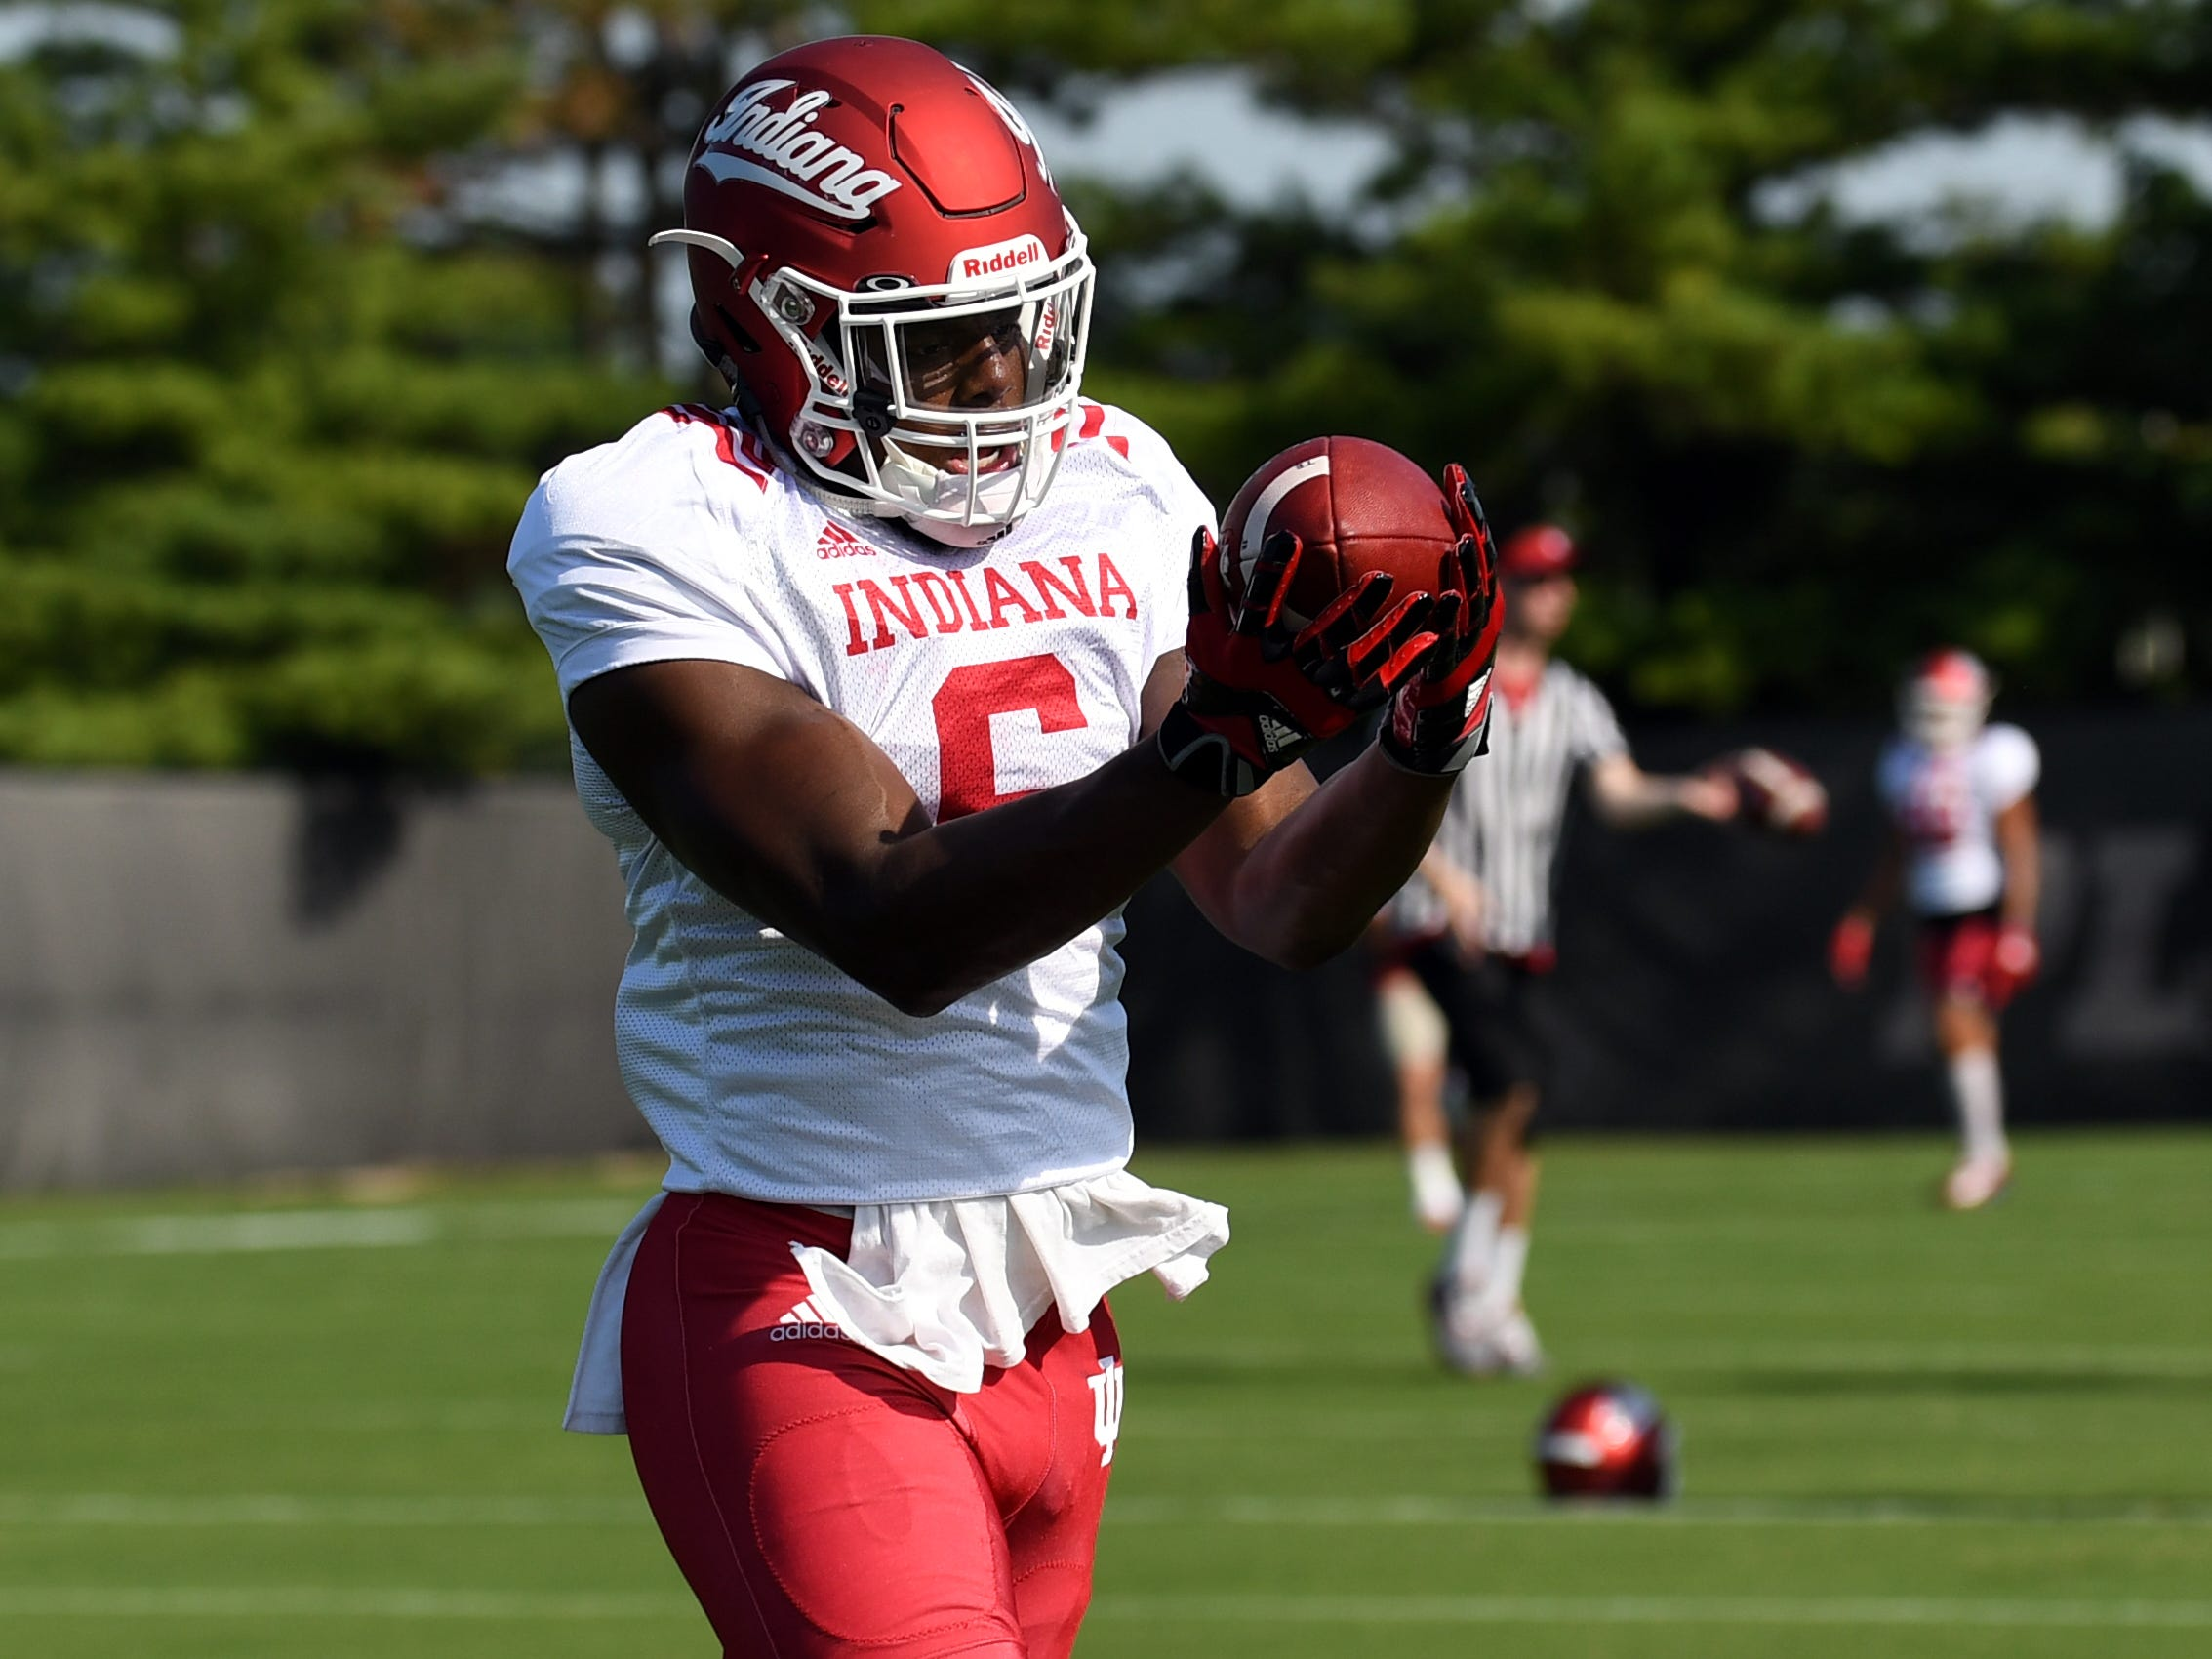 Indiana Hoosiers wide receiver Donovan Hale (6) catches a pass during practice at Mellencamp Pavilion in Bloomington, Ind., on Monday, August 6, 2018.